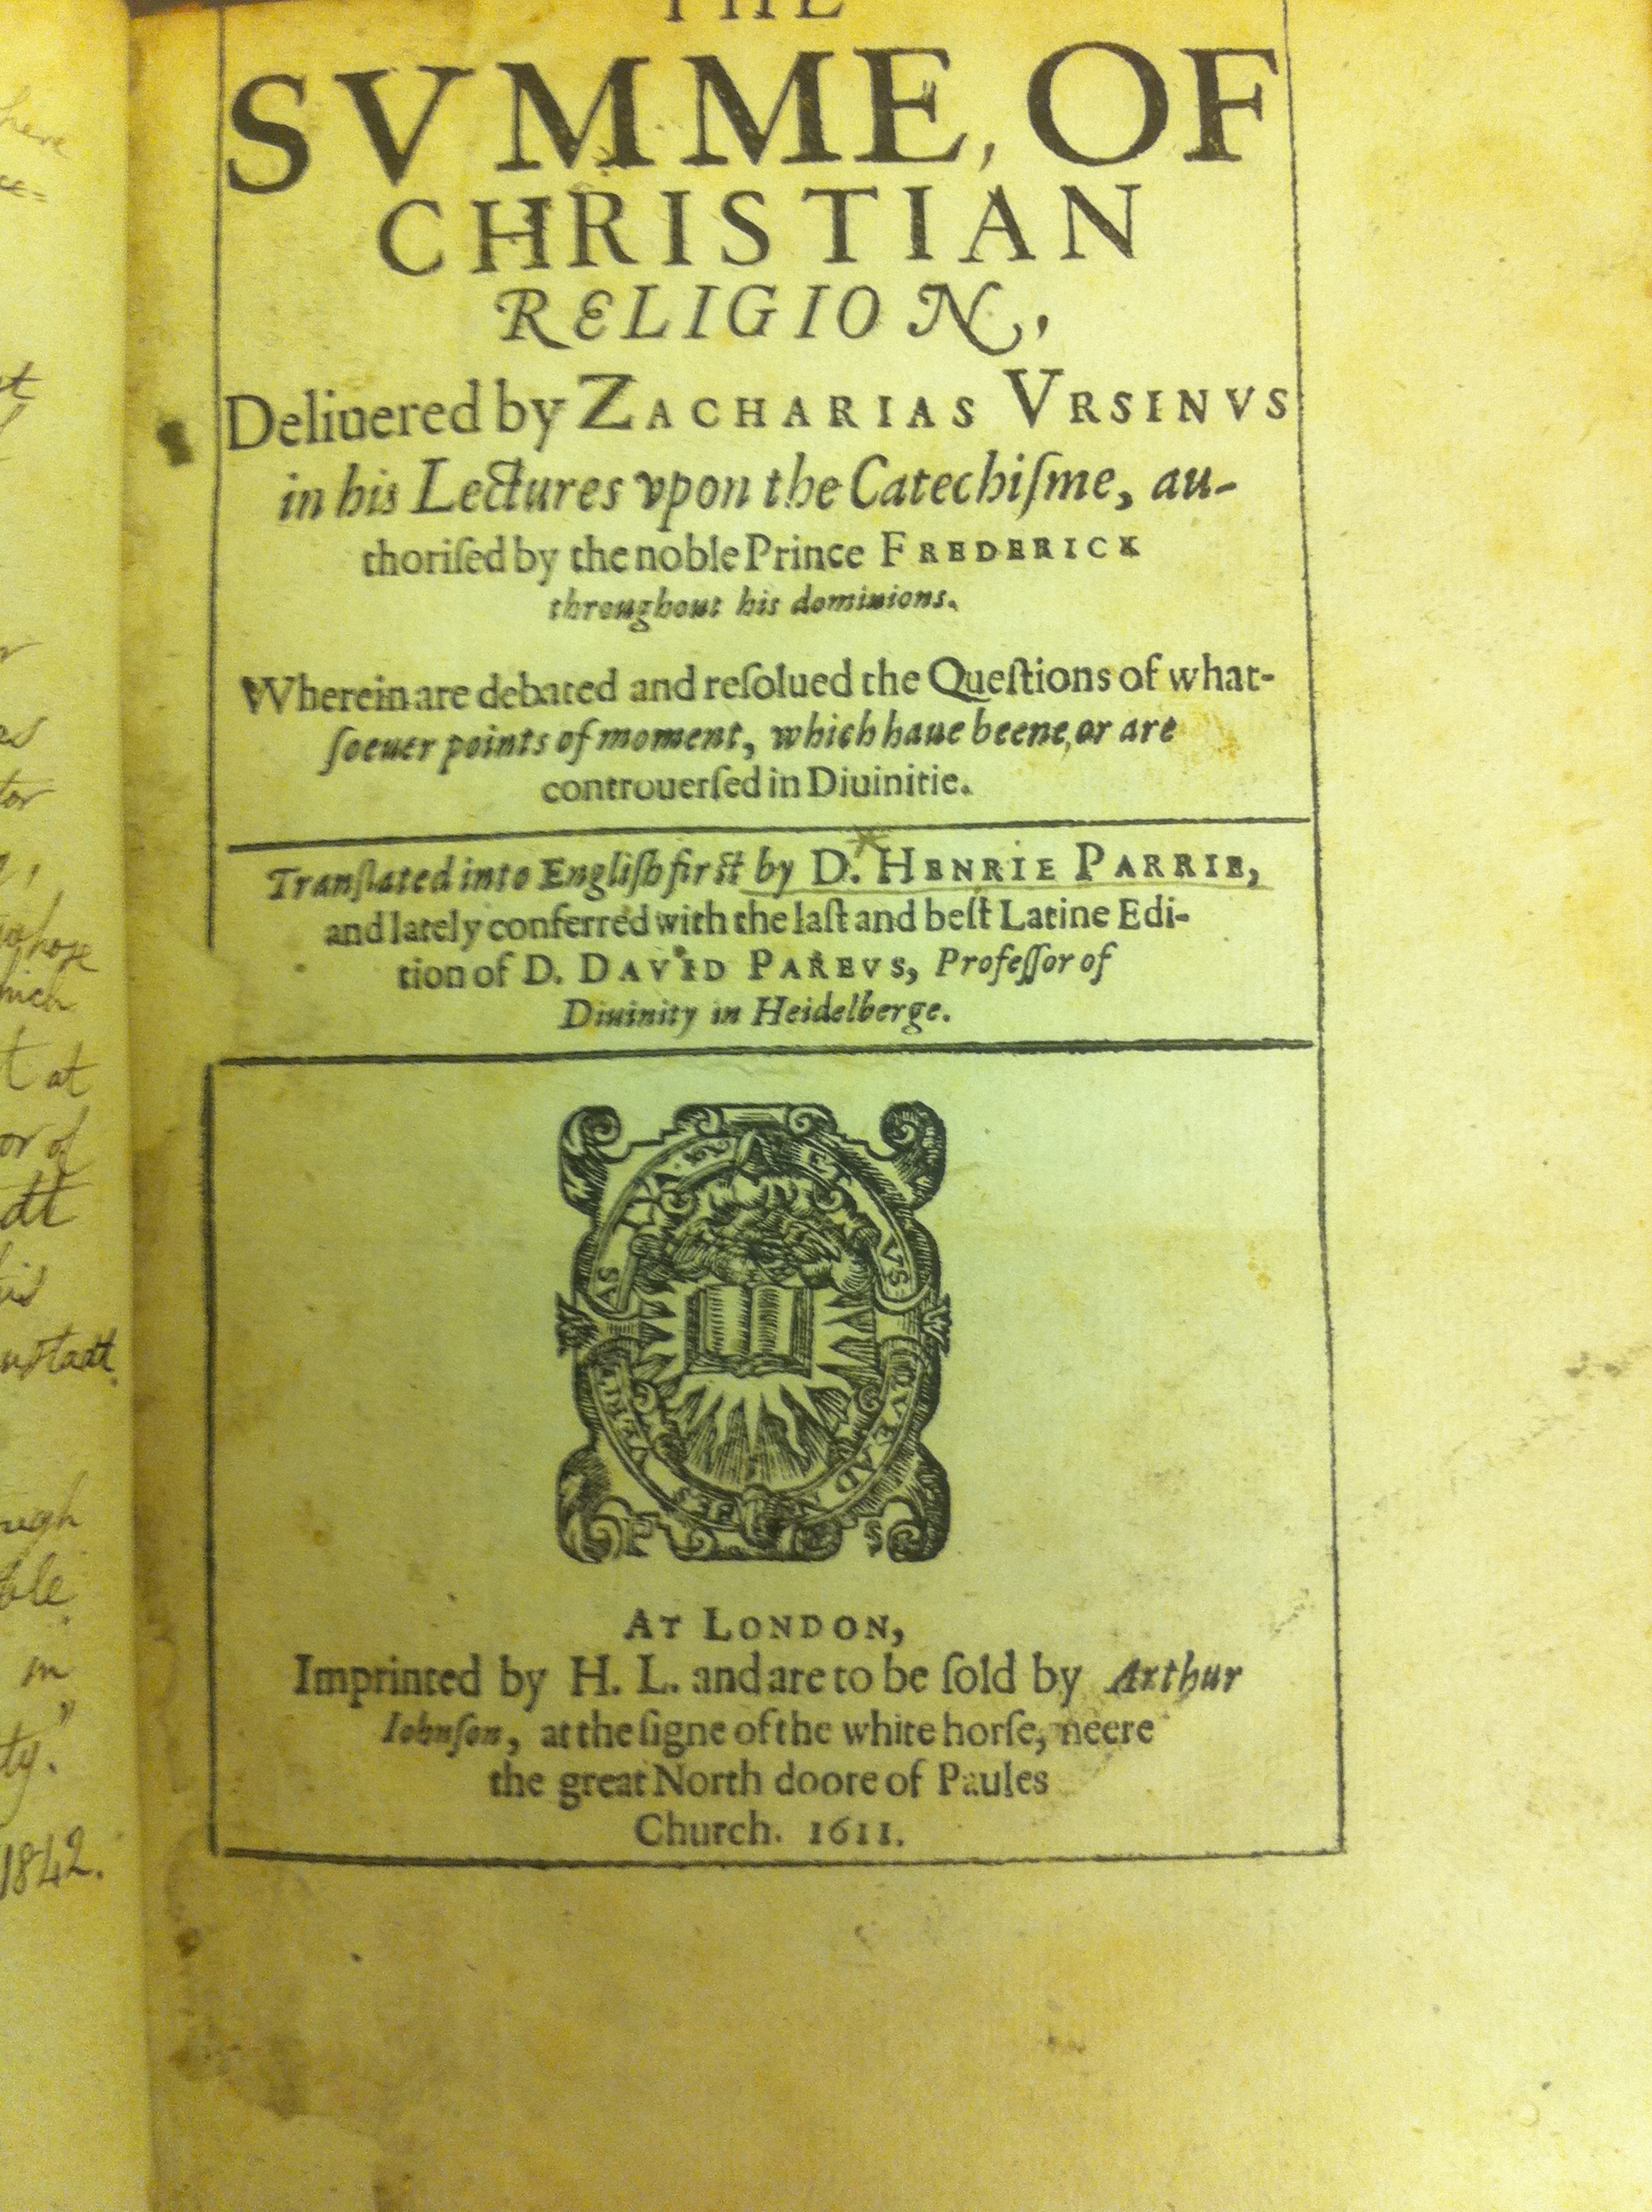 Title page of the Summit of the Christian Religion 1611